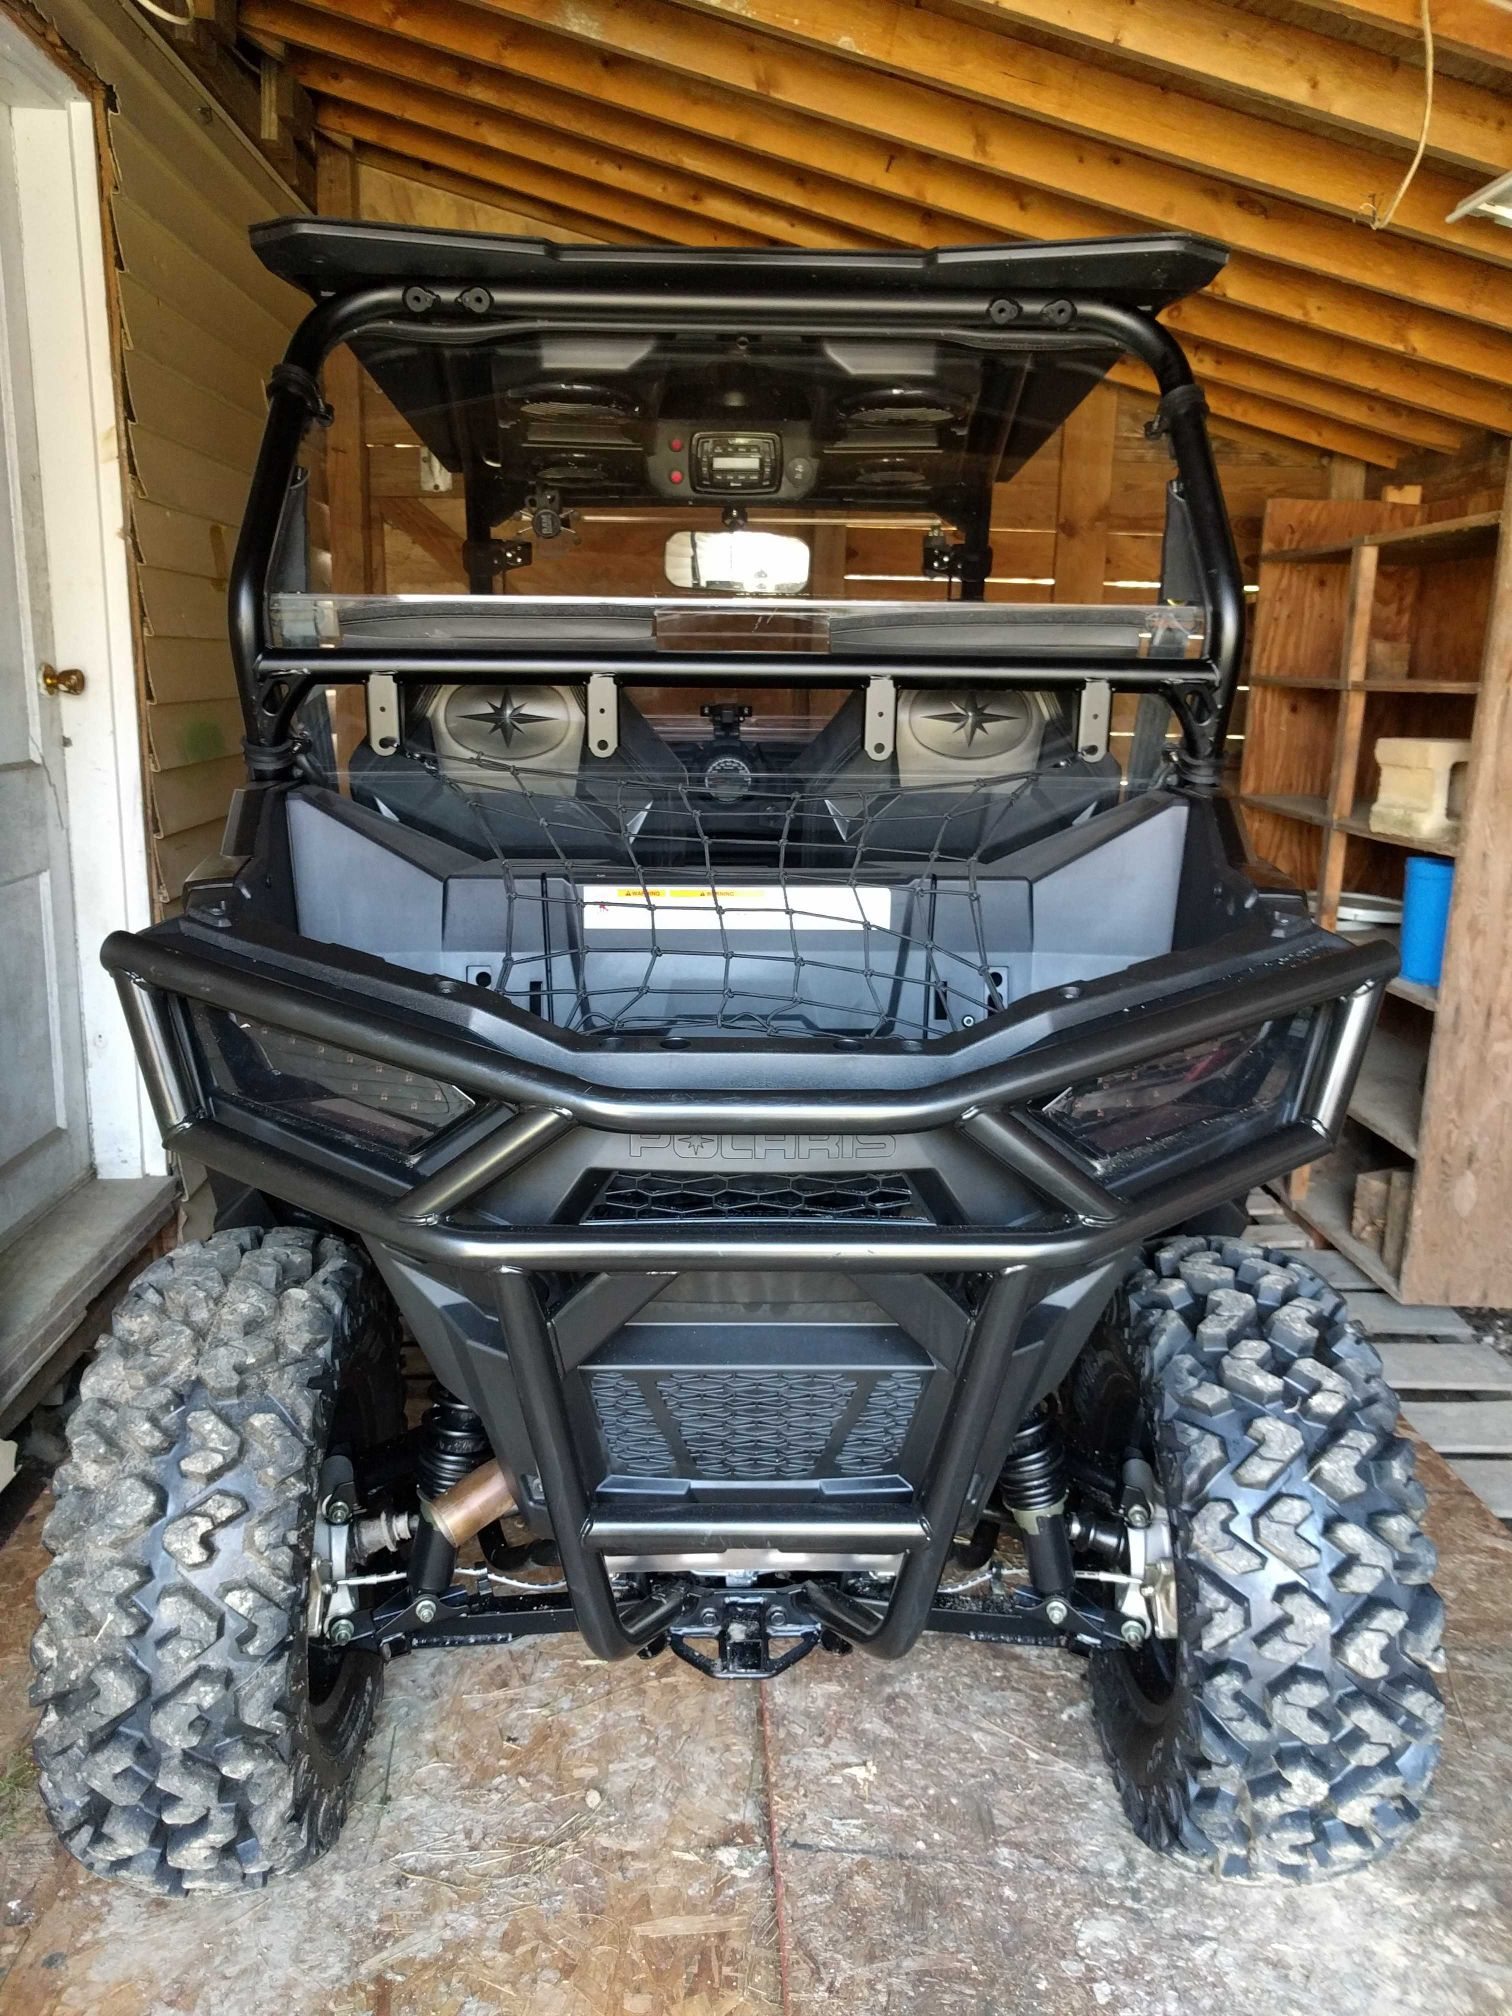 Blacked Out Rzr >> Polaris RZR Forum - RZR Forums.net - What did you do to your 900 trail today